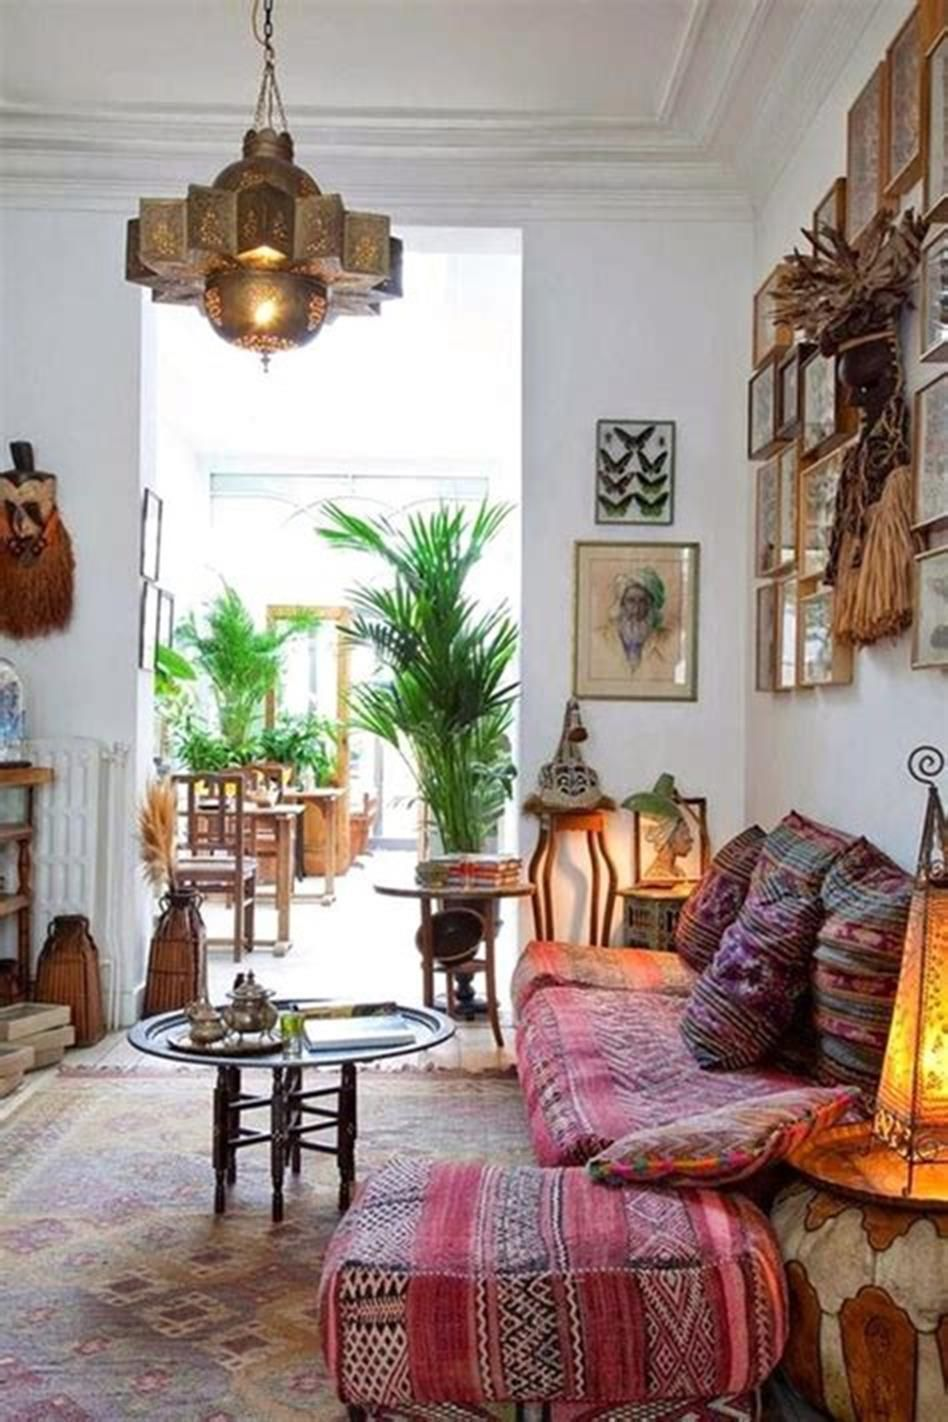 Small Boho Living Room: 35 Stunning Boho Bohemian Living Room Ideas